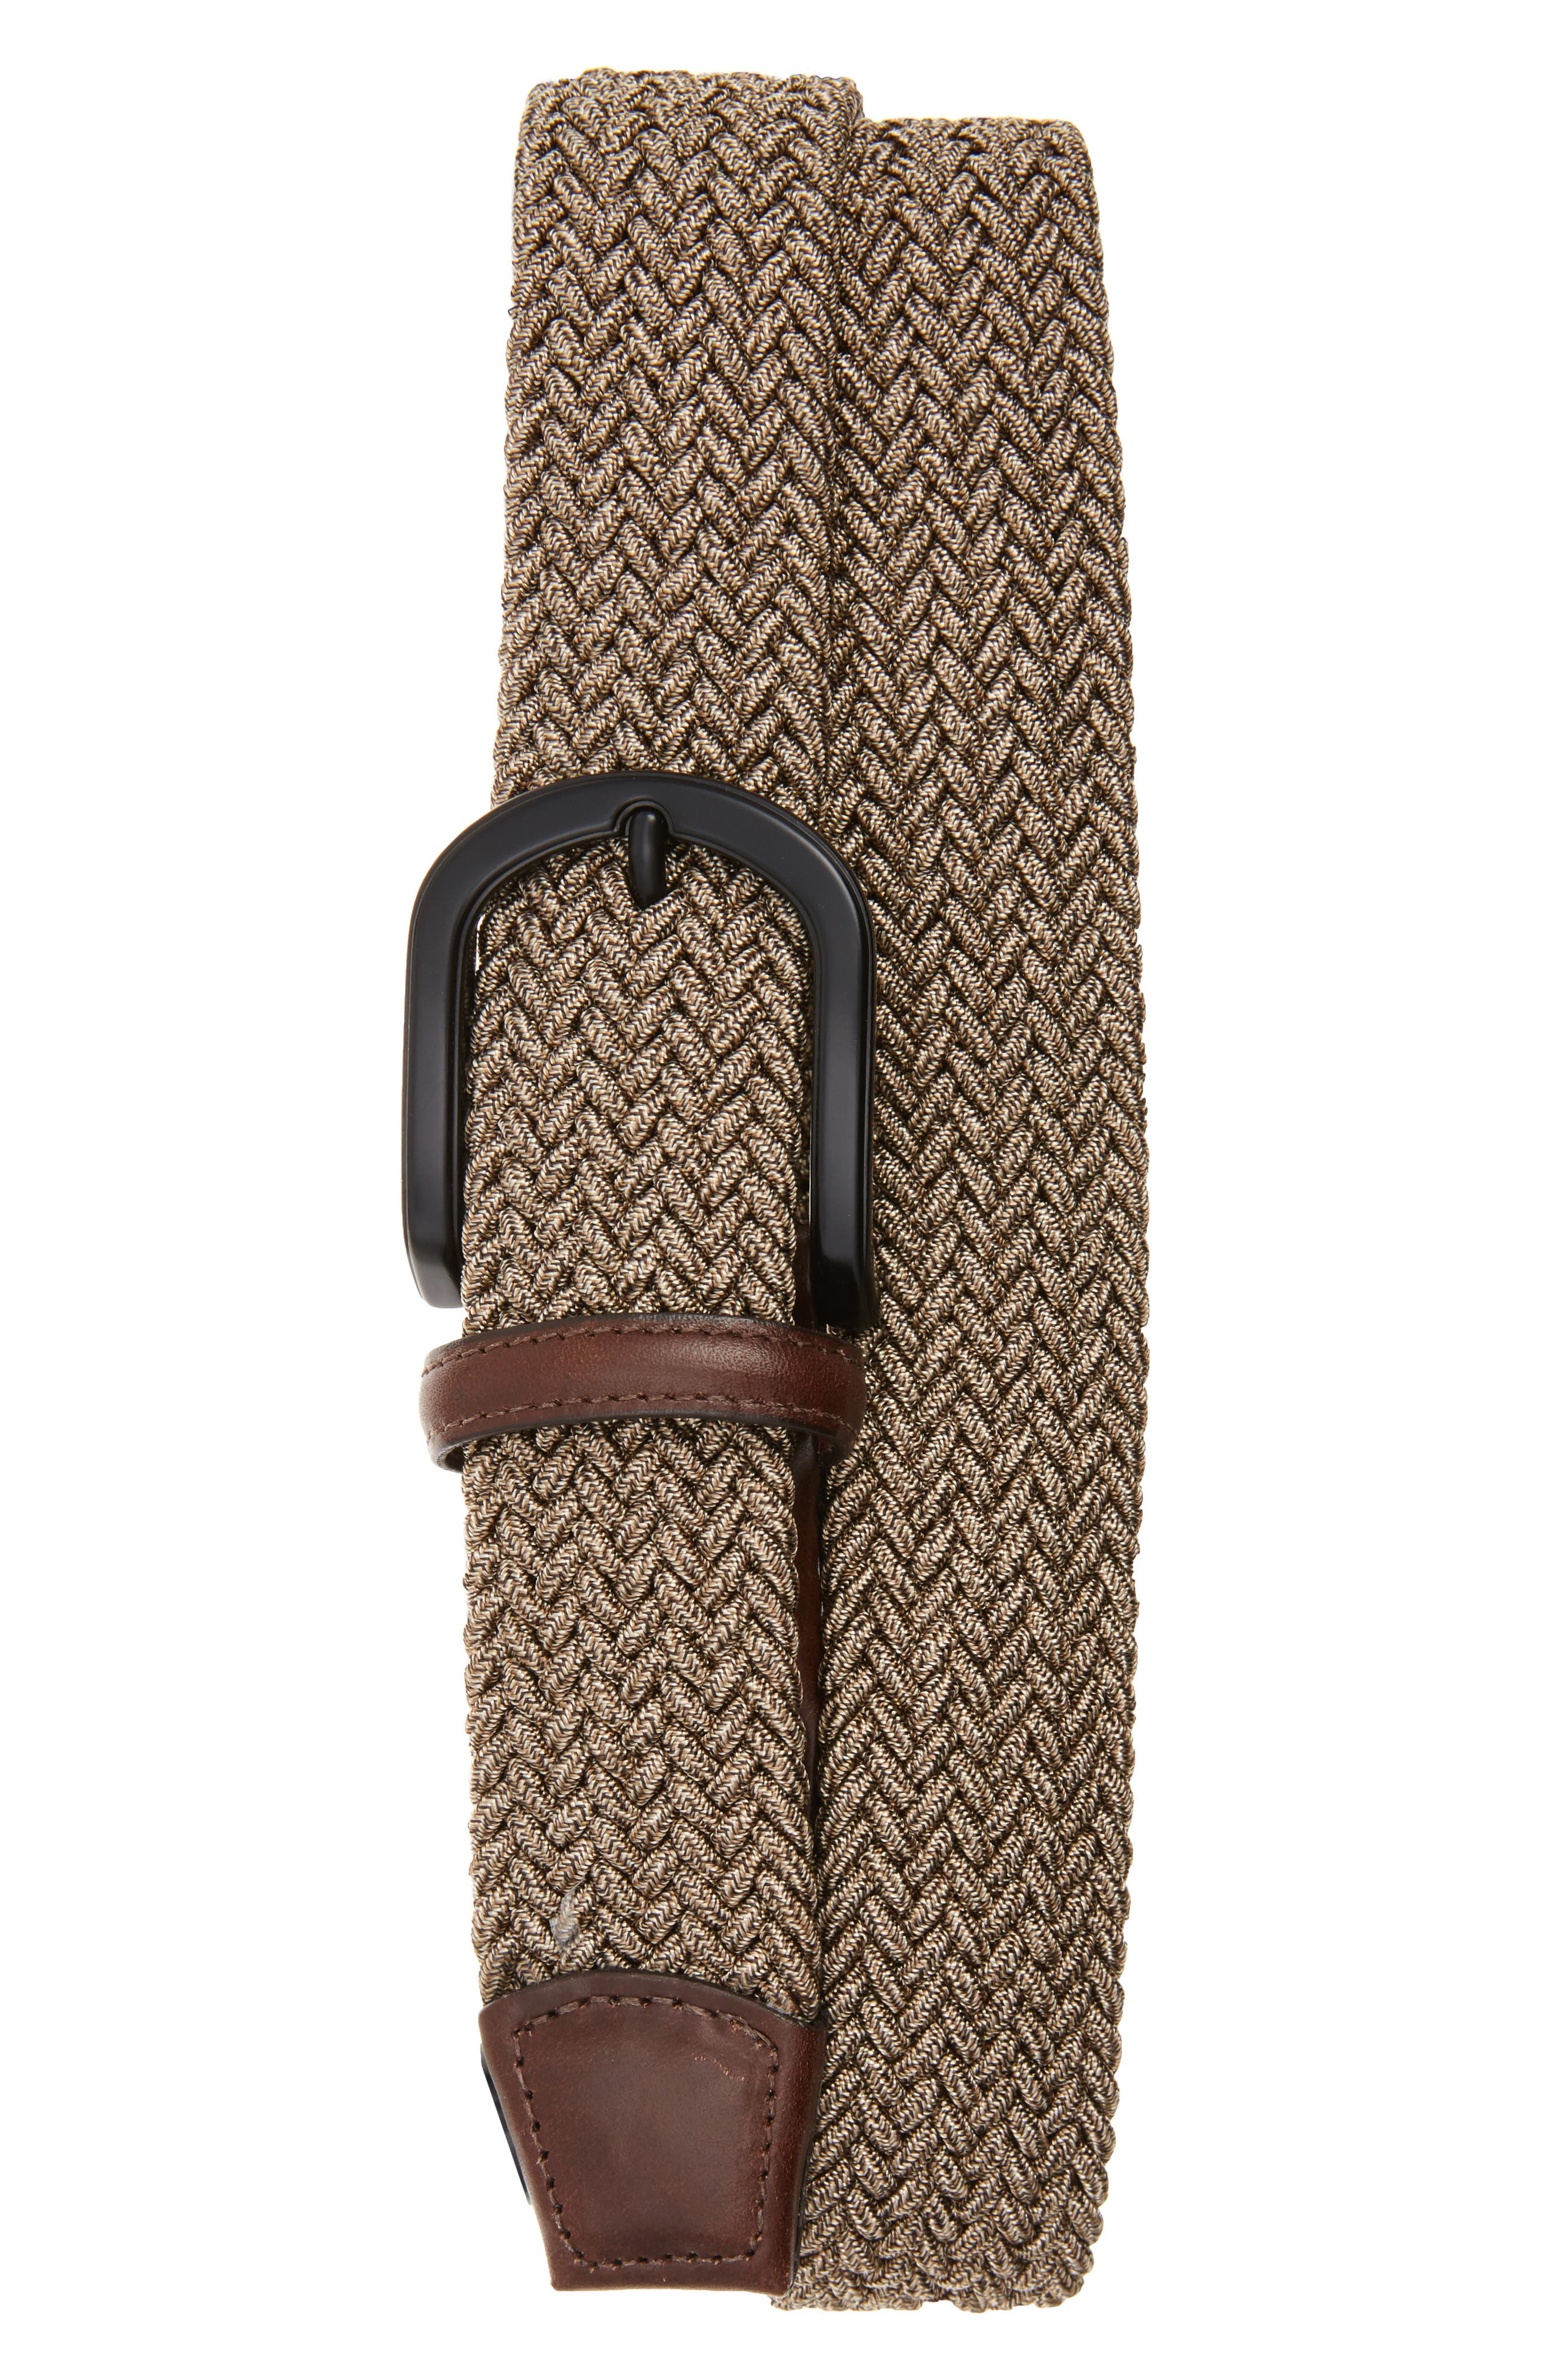 A curvy matte horseshoe buckle secures a tightly woven stretch belt made from cool melange yarns. Style Name: Torino Braided Melange Belts. Style Number: 5473489. Available in stores.